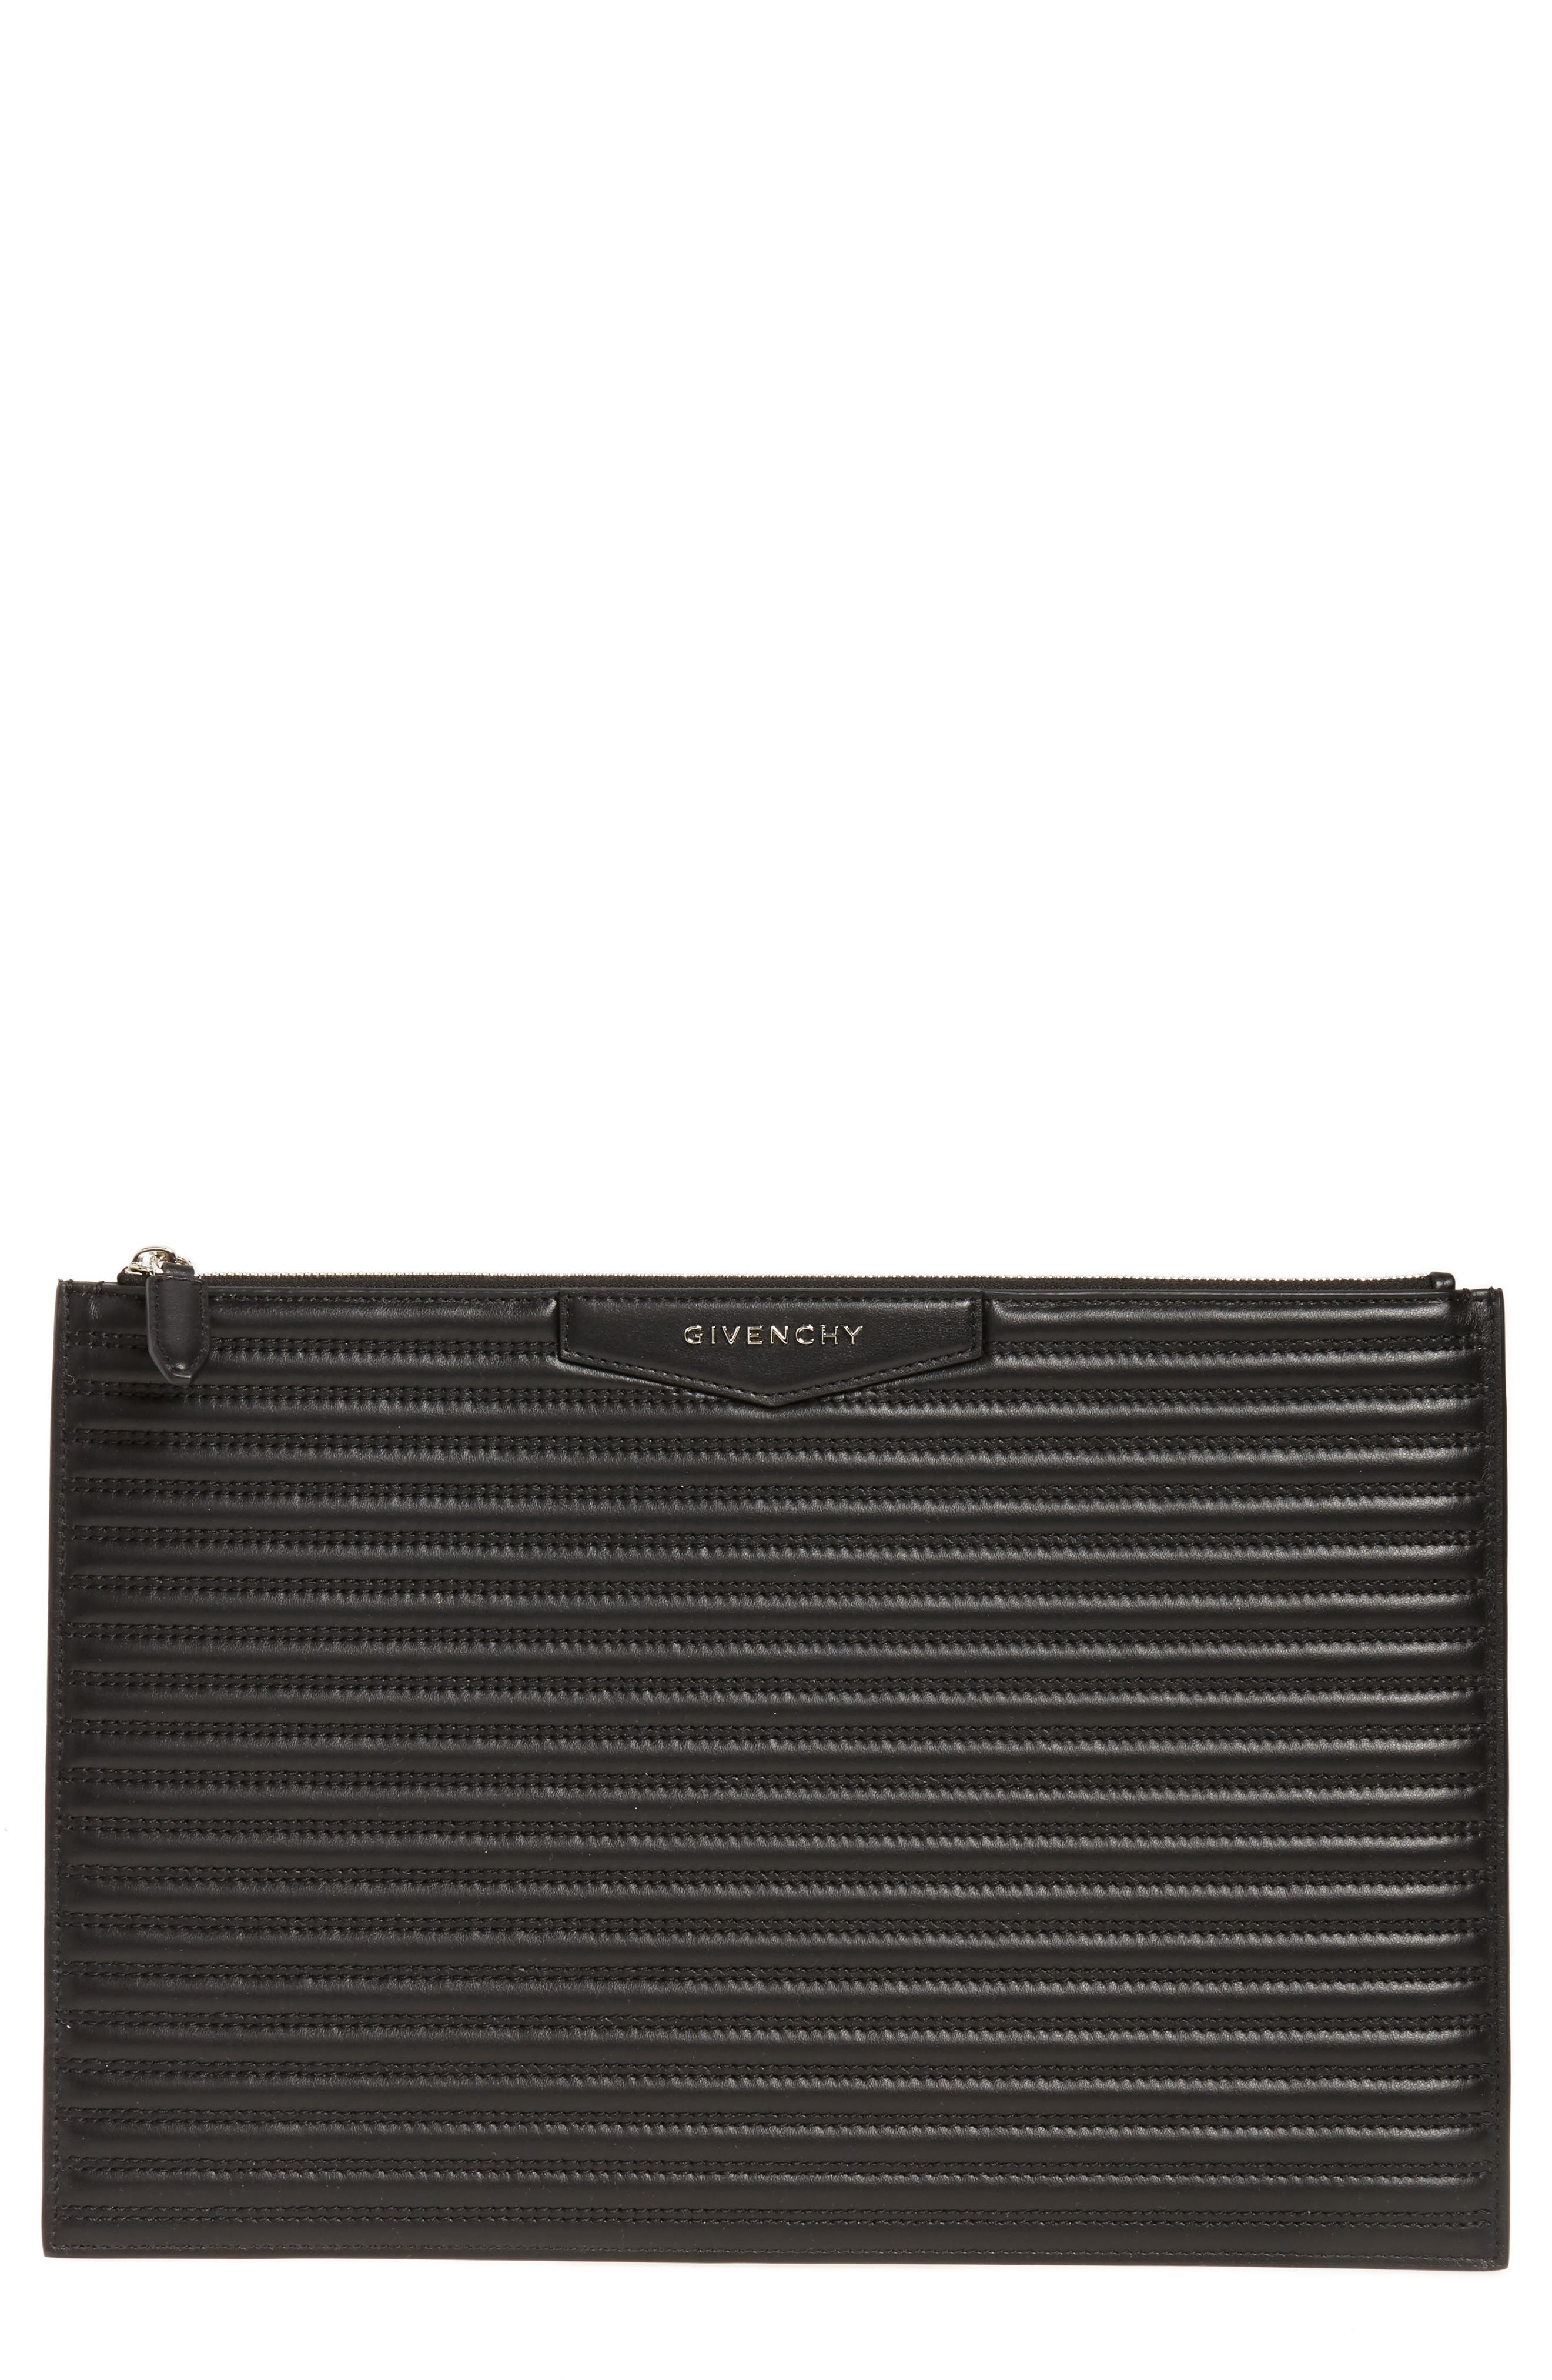 Alternate Image 1 Selected - Givenchy Antigona Quilted Leather Pouch